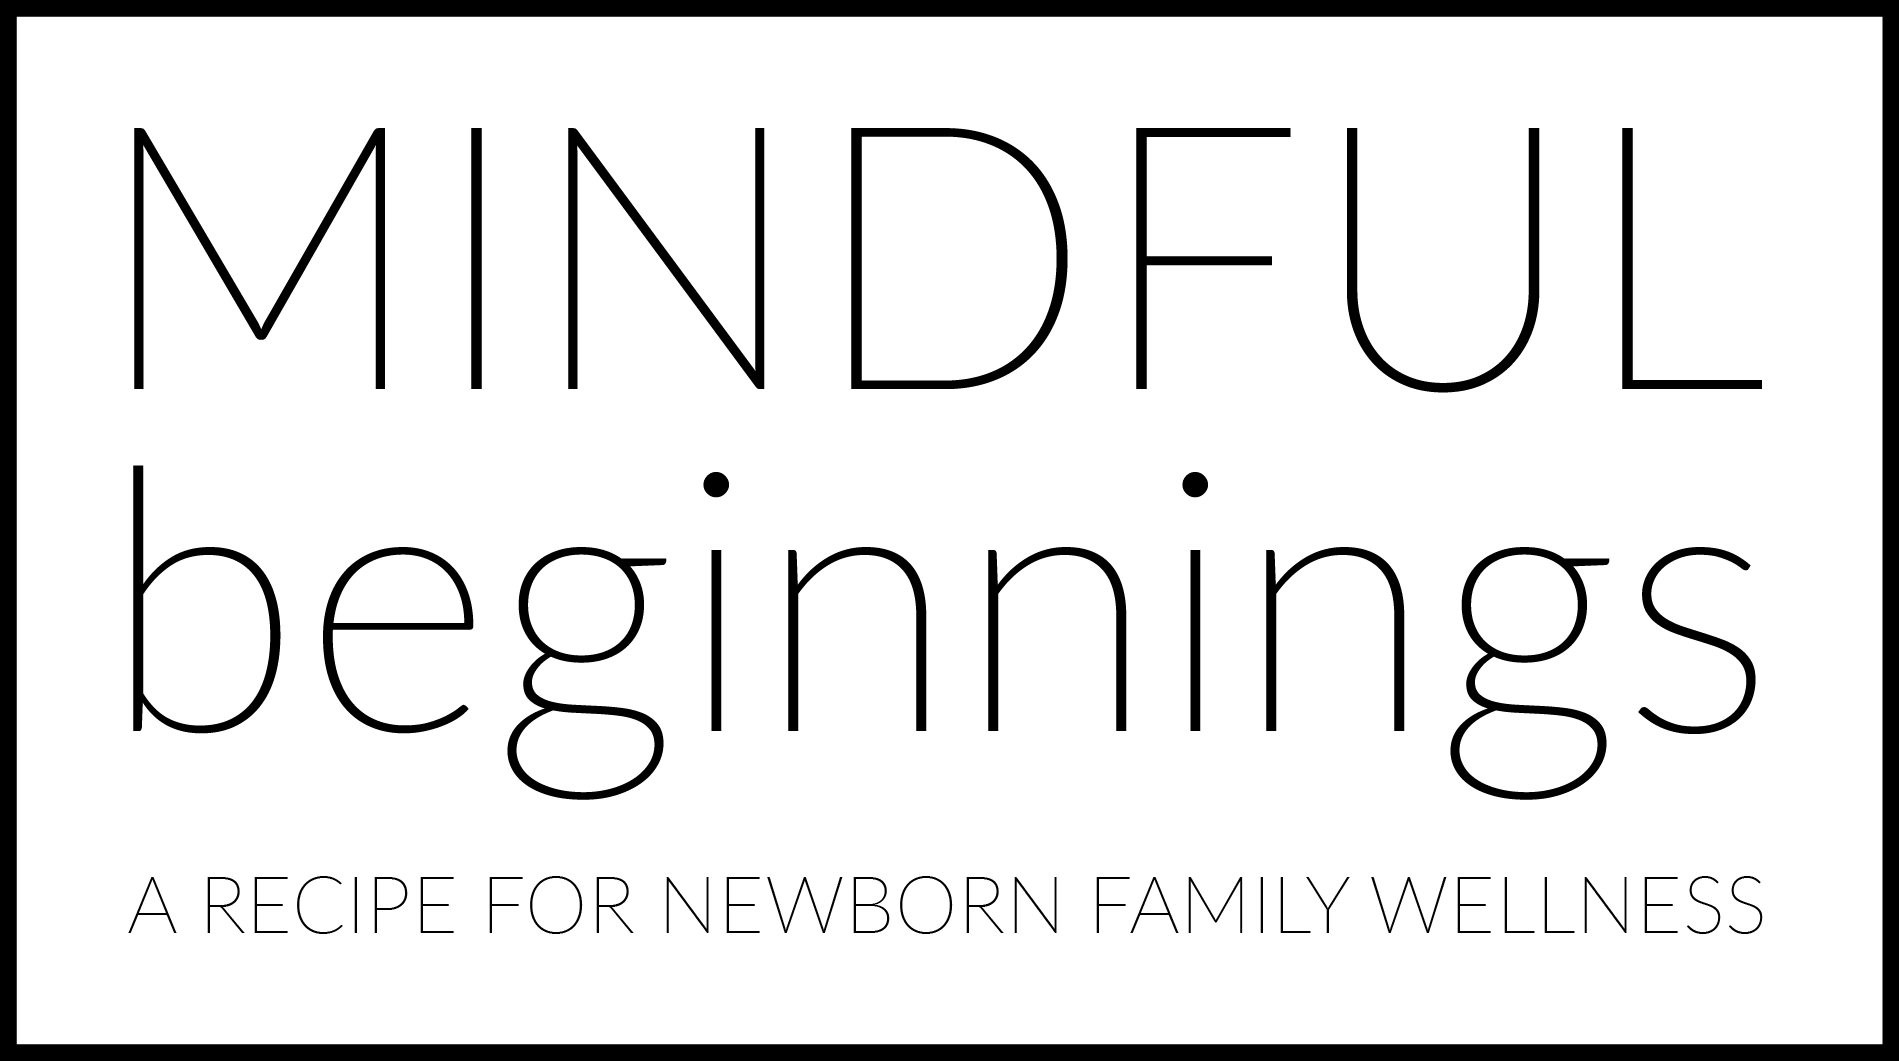 Mindful Begninnings - Childbirth Classes for Hollister, Gilroy, Morgan Hill, Monterey, Santa Cruz, and the South Bay